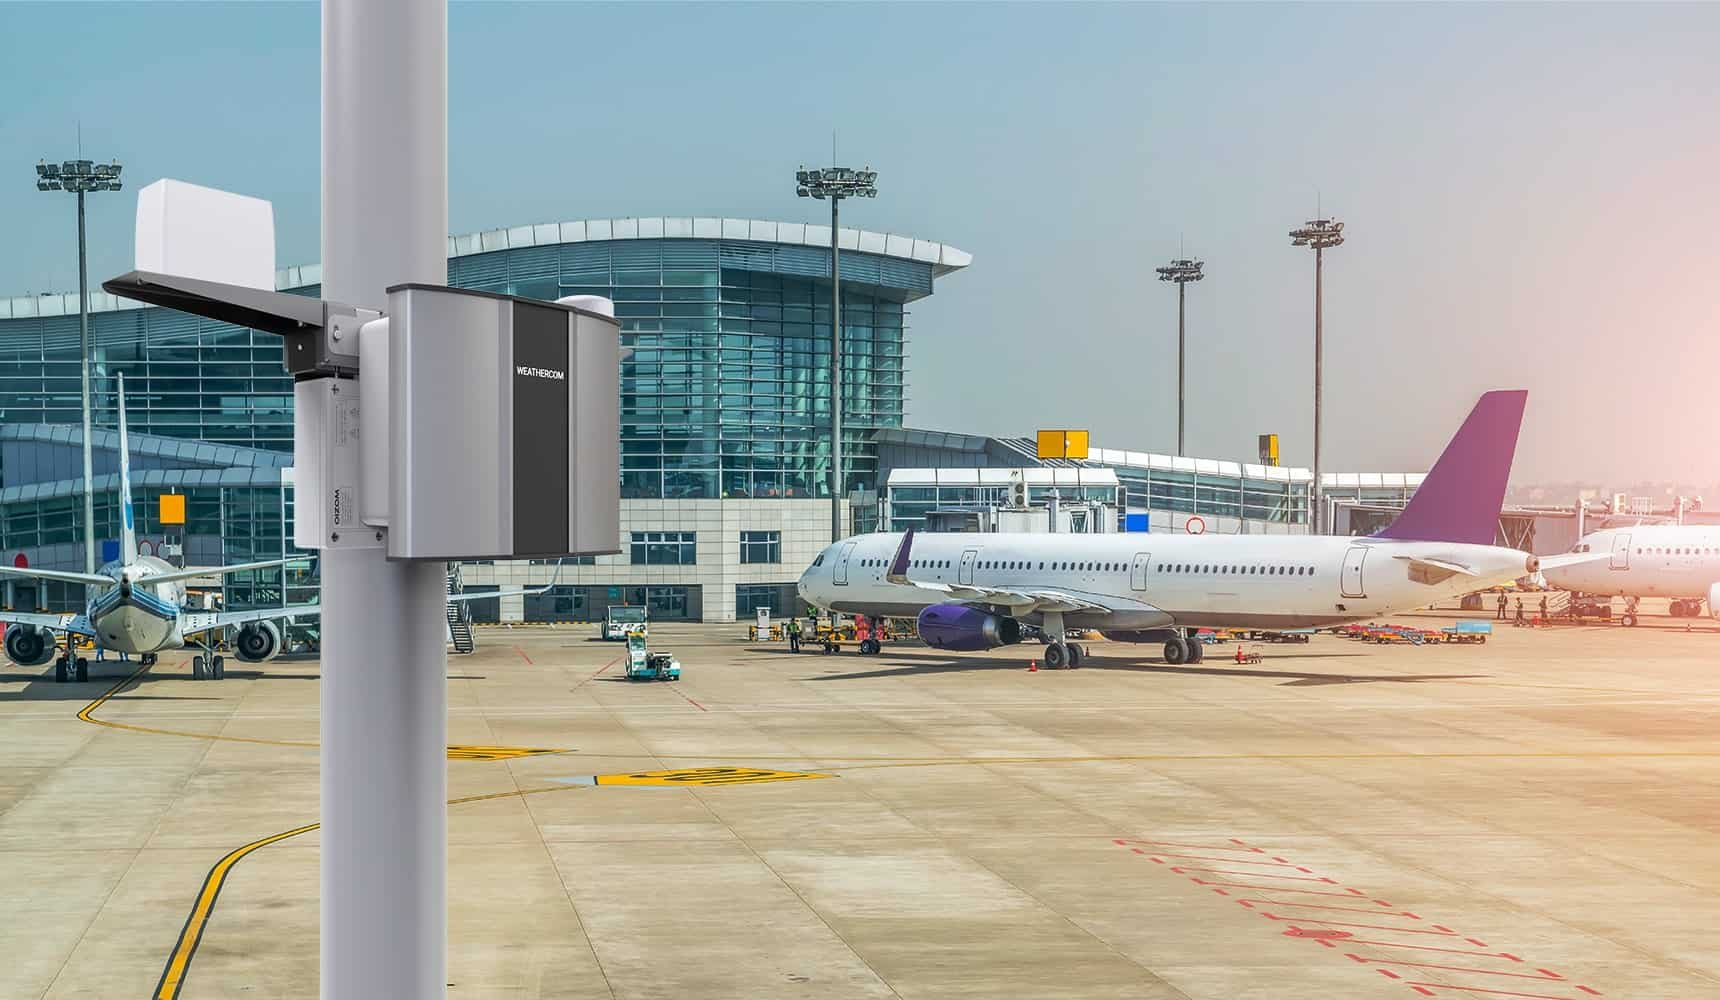 Oizom Automatic Weather Station installed at ports can provide seaport or airport pollution data.